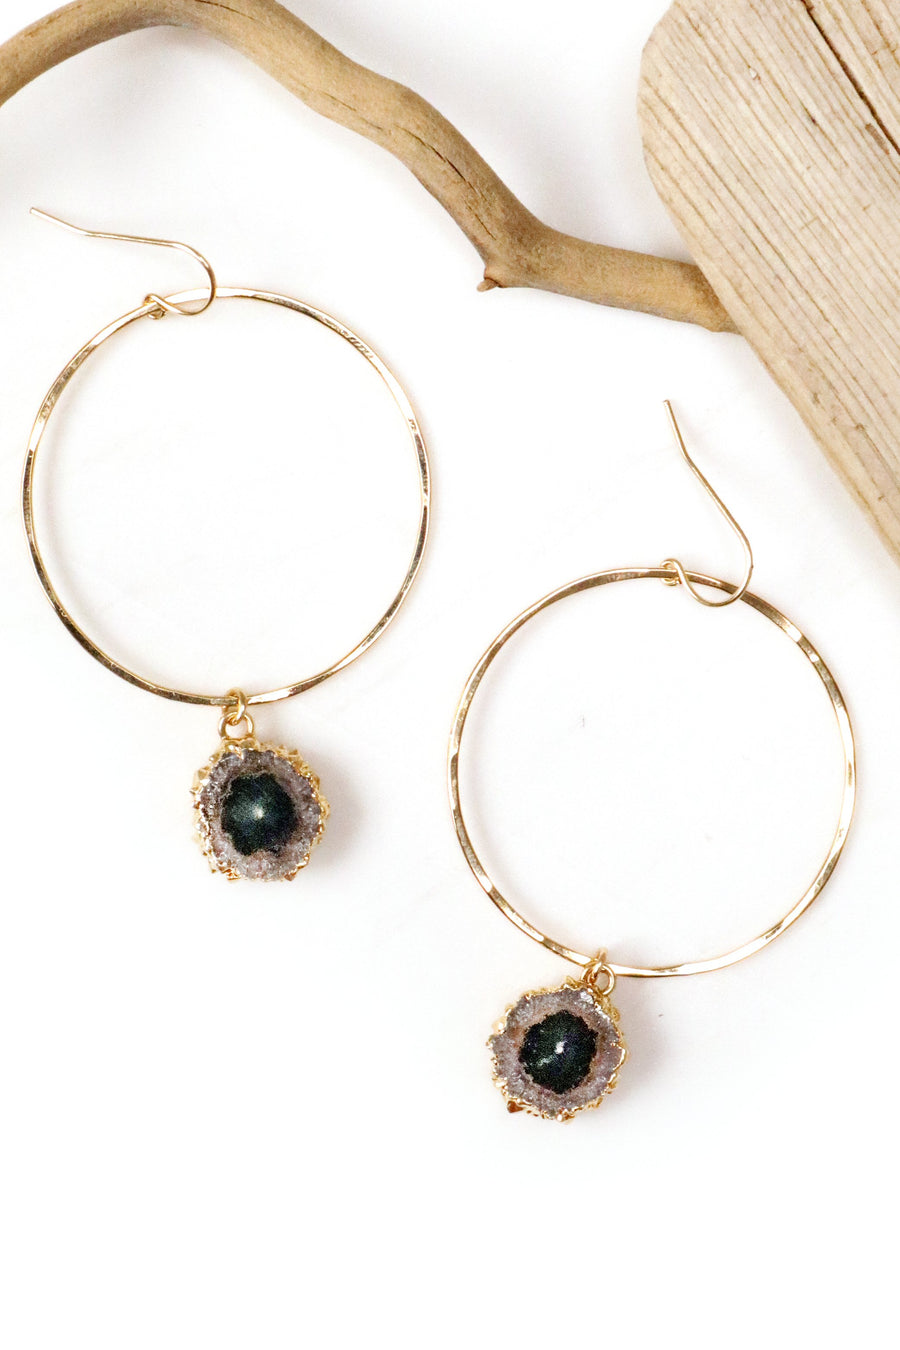 Stalactite Hammered Gold Hoops - ShopMadisonbelle